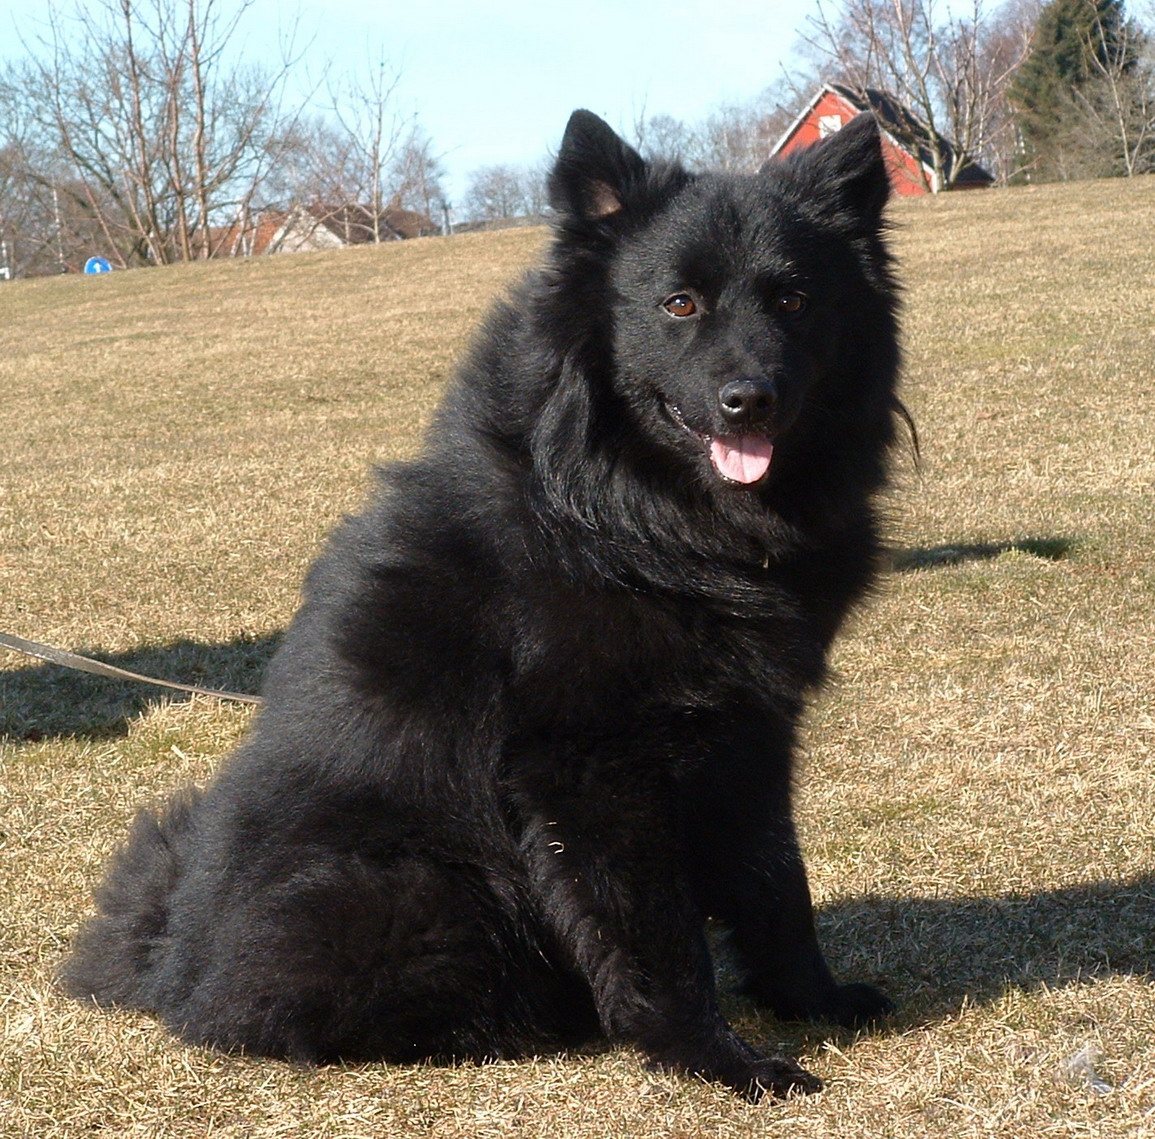 Swedish Lapphund Dog: Swedish Swedish Lapphund Dog In Nature Breed